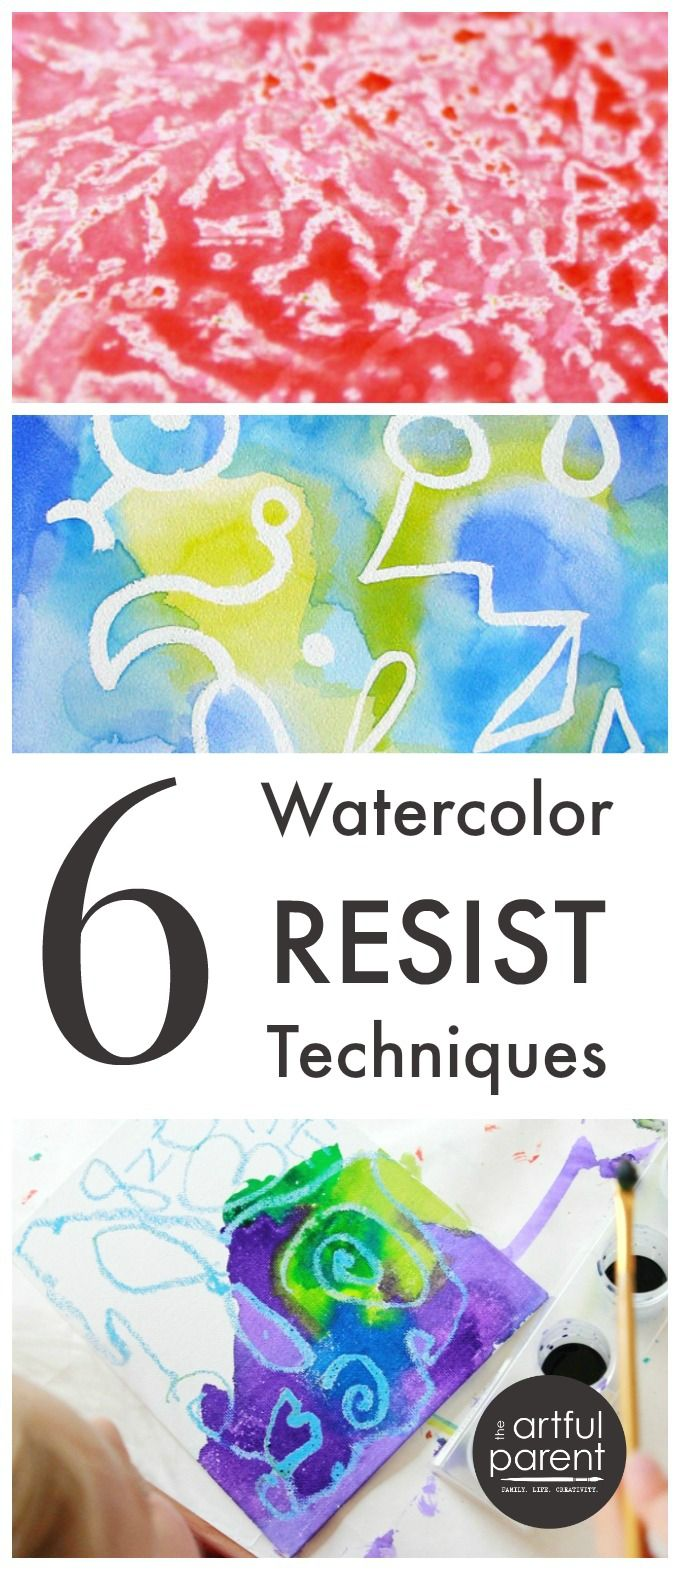 6 Amazing Watercolor Resist Techniques To Try With Kids Art